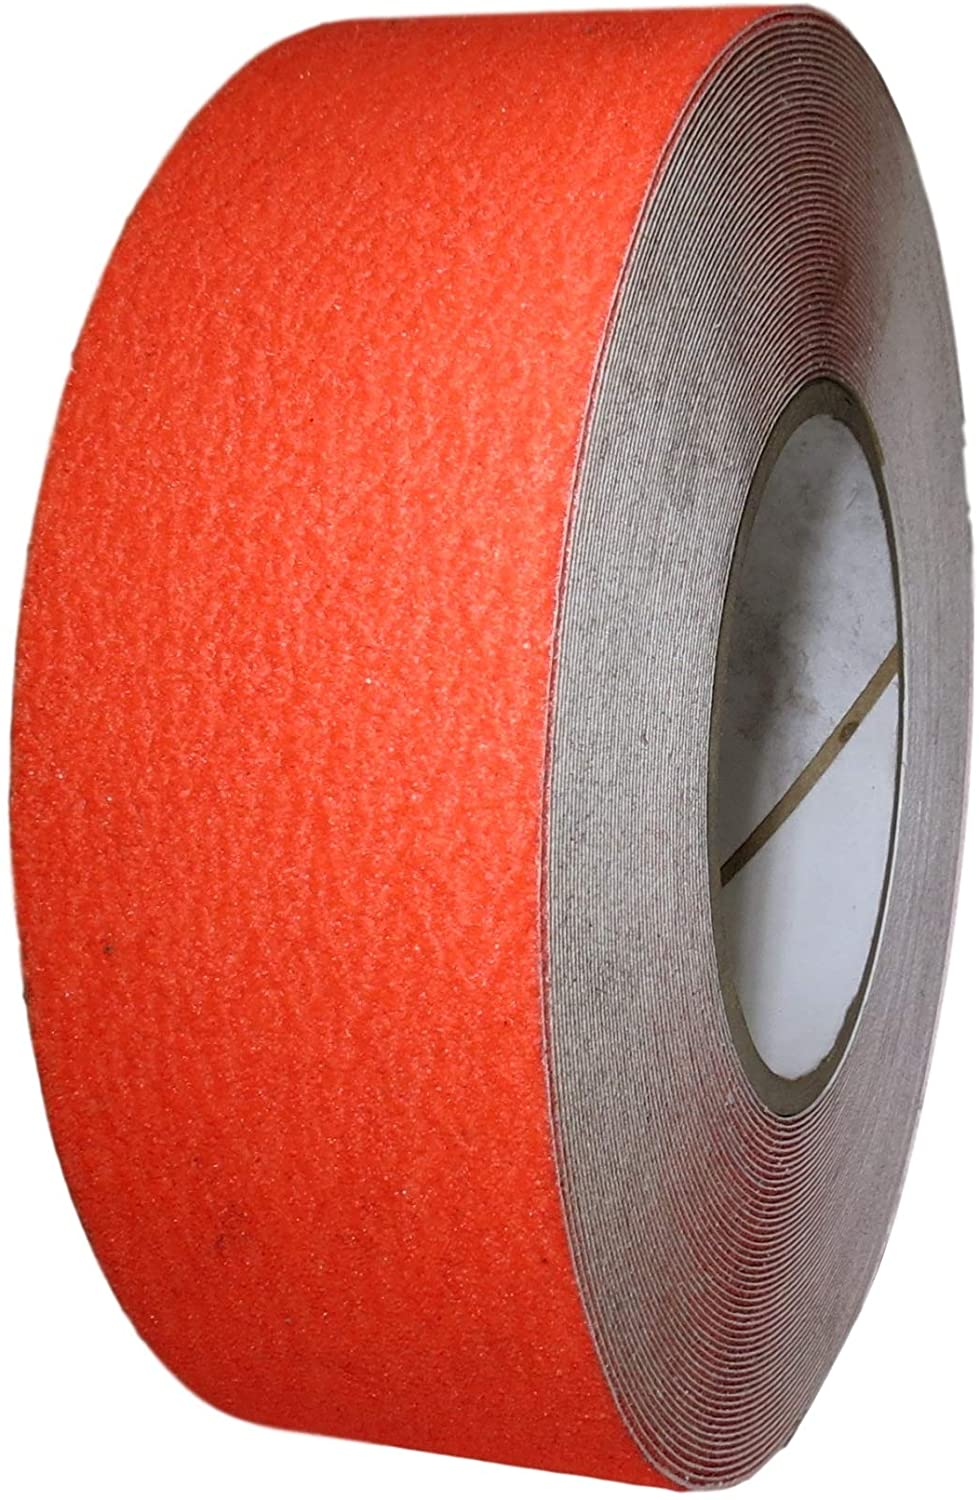 T.R.U. NST-20 Non-Skid Tape 60 ft. length Safety Way 60 Grit Anti Slip Traction Tape 32 Mil No Slip (4 in. x 60 ft. (100mm wide), Fluorescent Red)